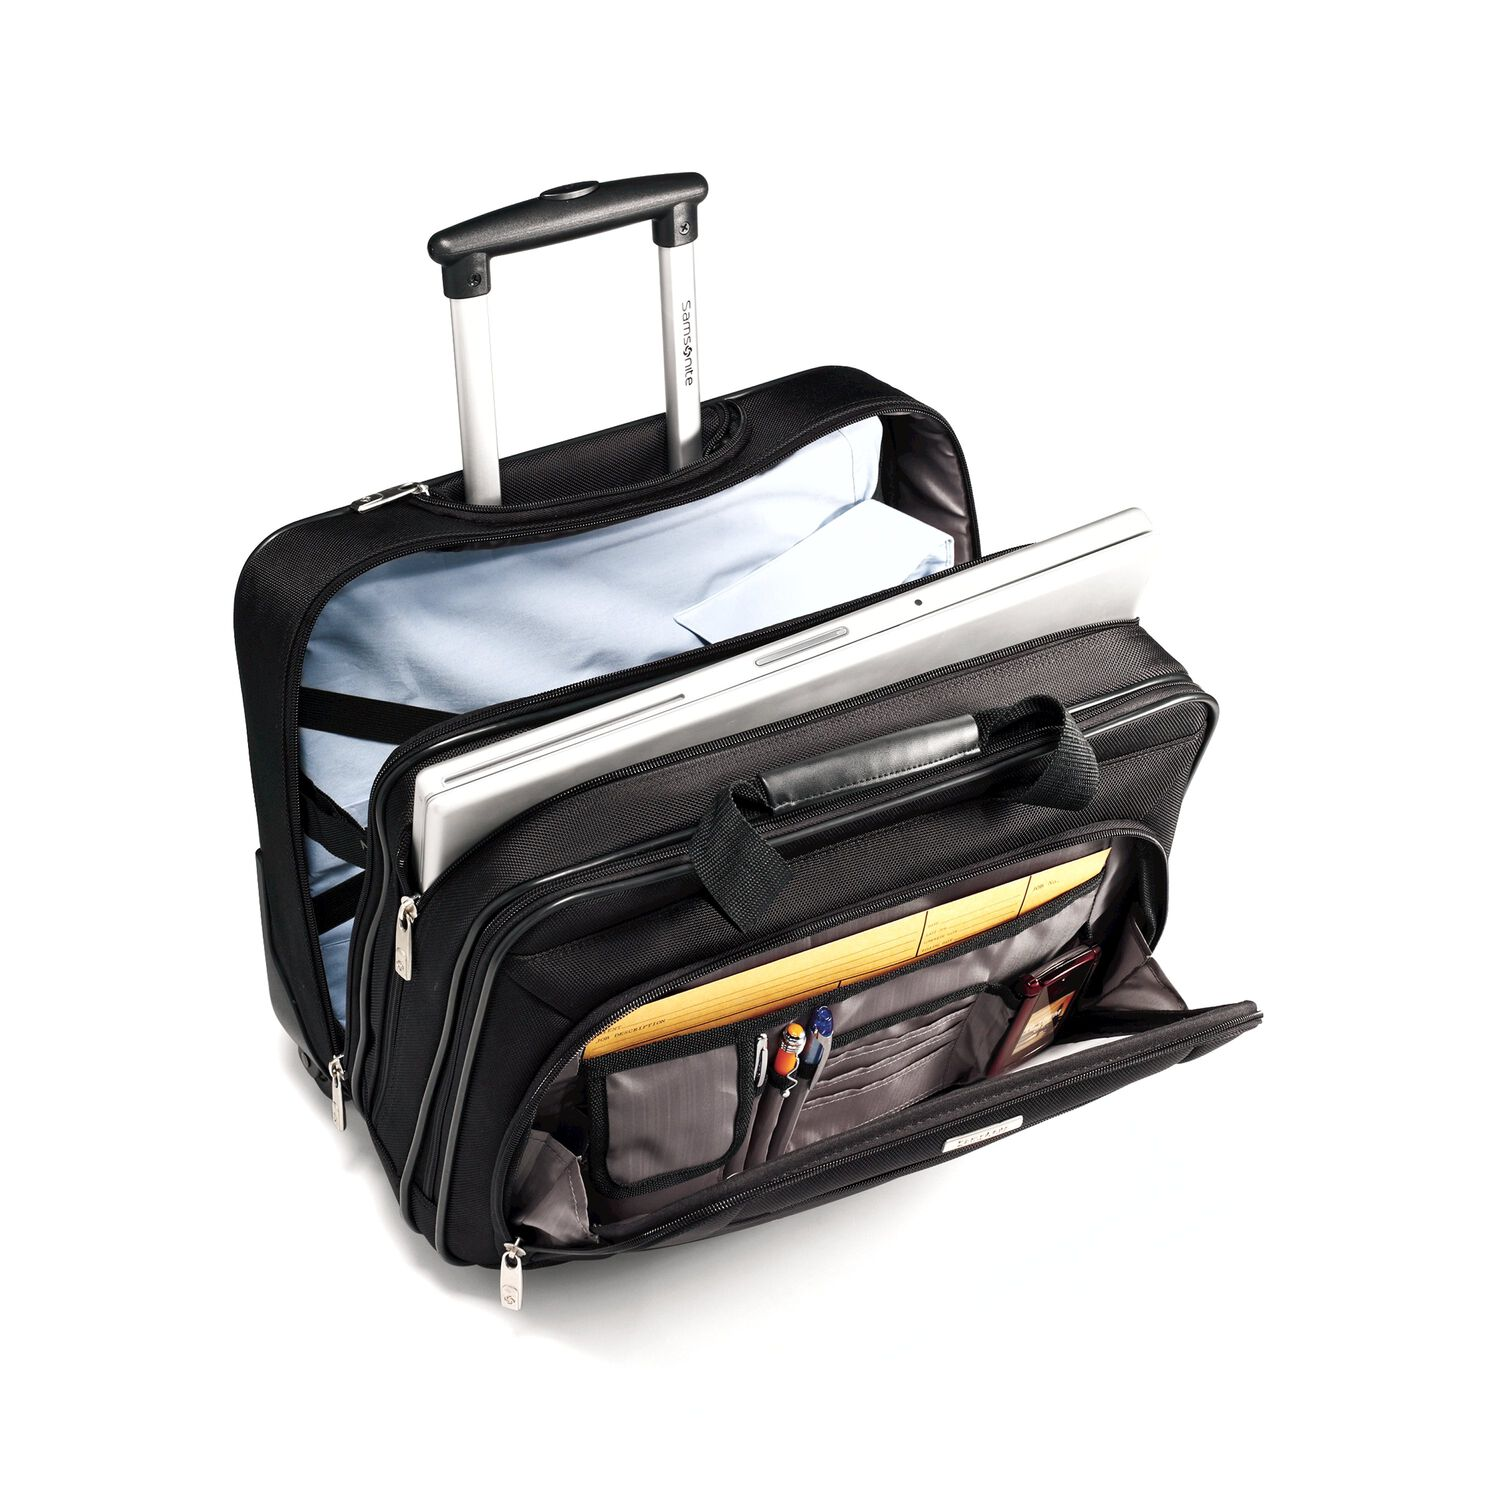 Samsonite Clic Business Wheeled Case In The Color Black